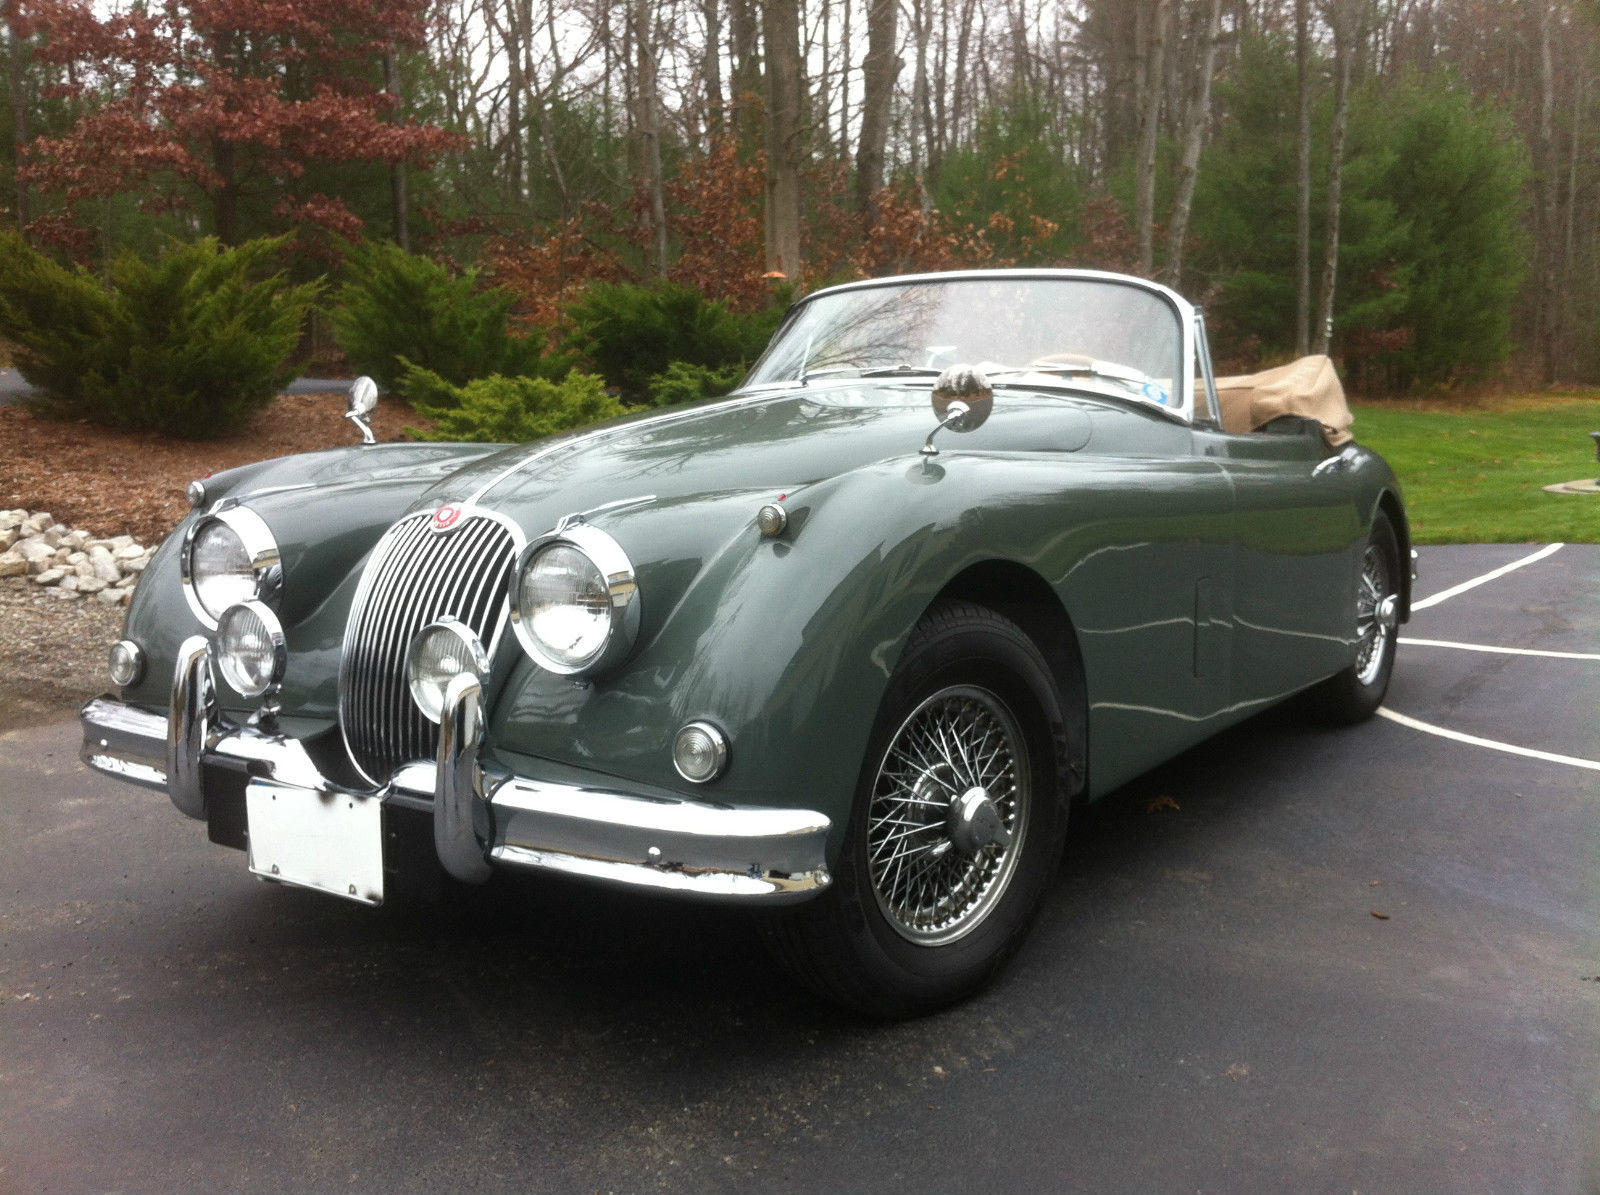 Desirable Jaguar XK150 is Becoming Harder To Find